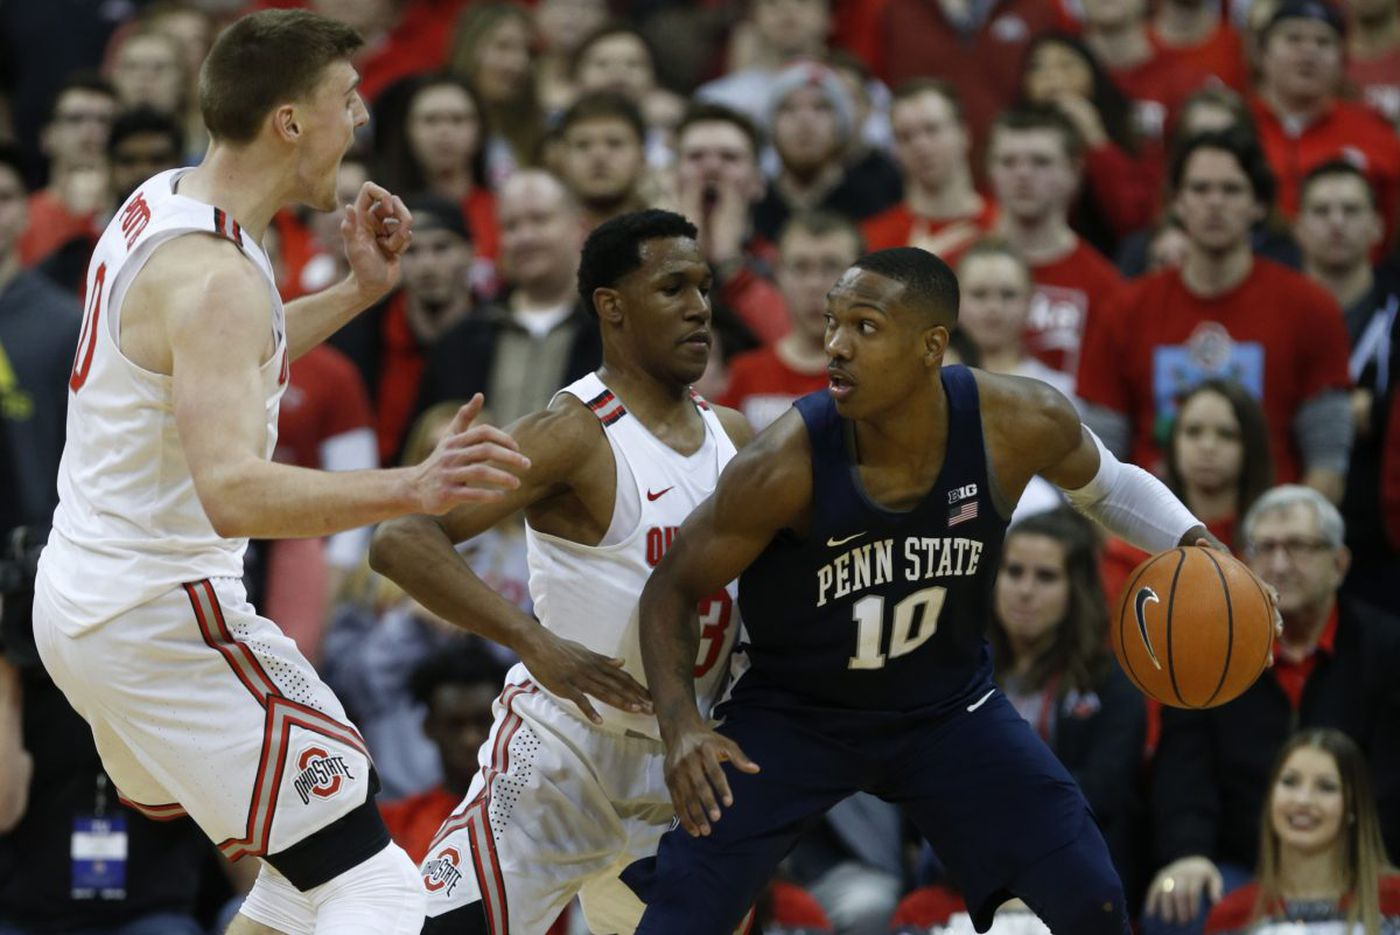 Penn State wins a close game (finally)   College Hoops Watch